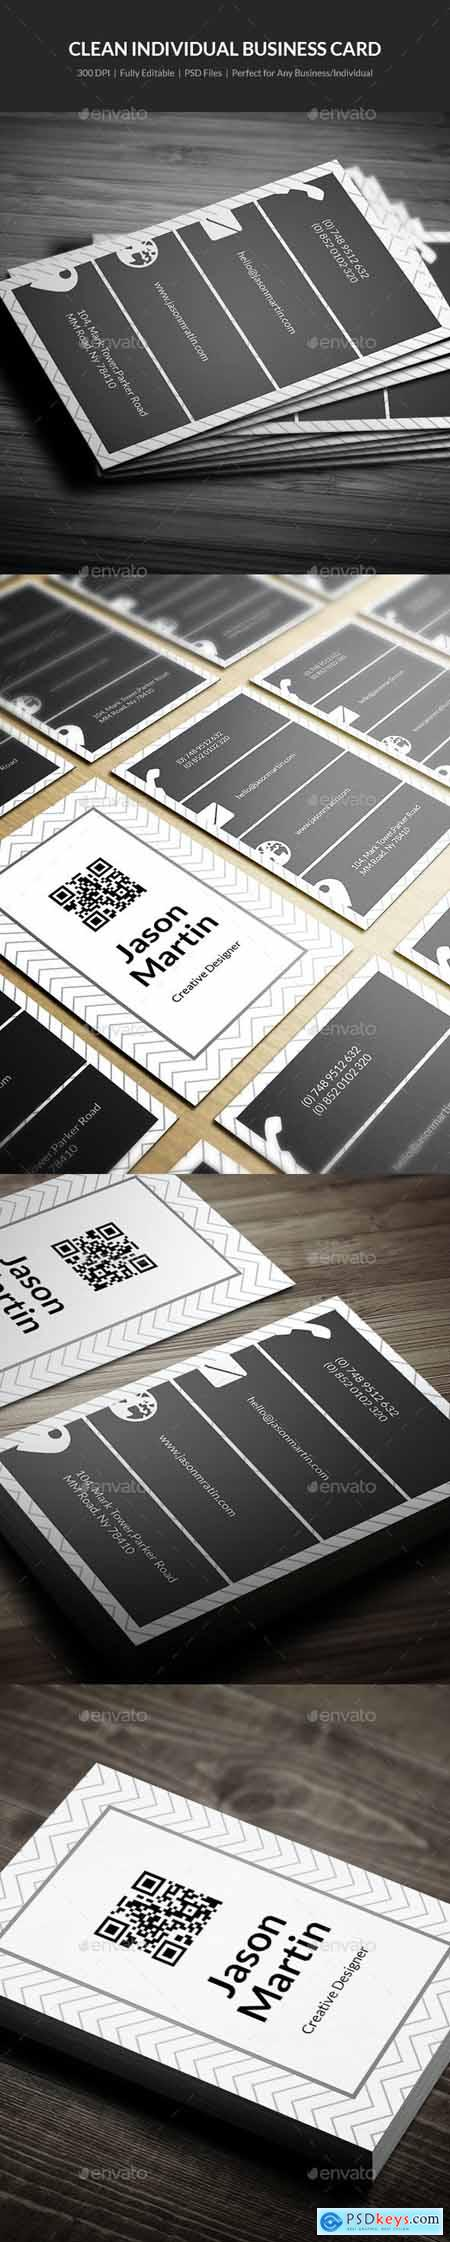 Clean Individual Business Card - 08 21241636